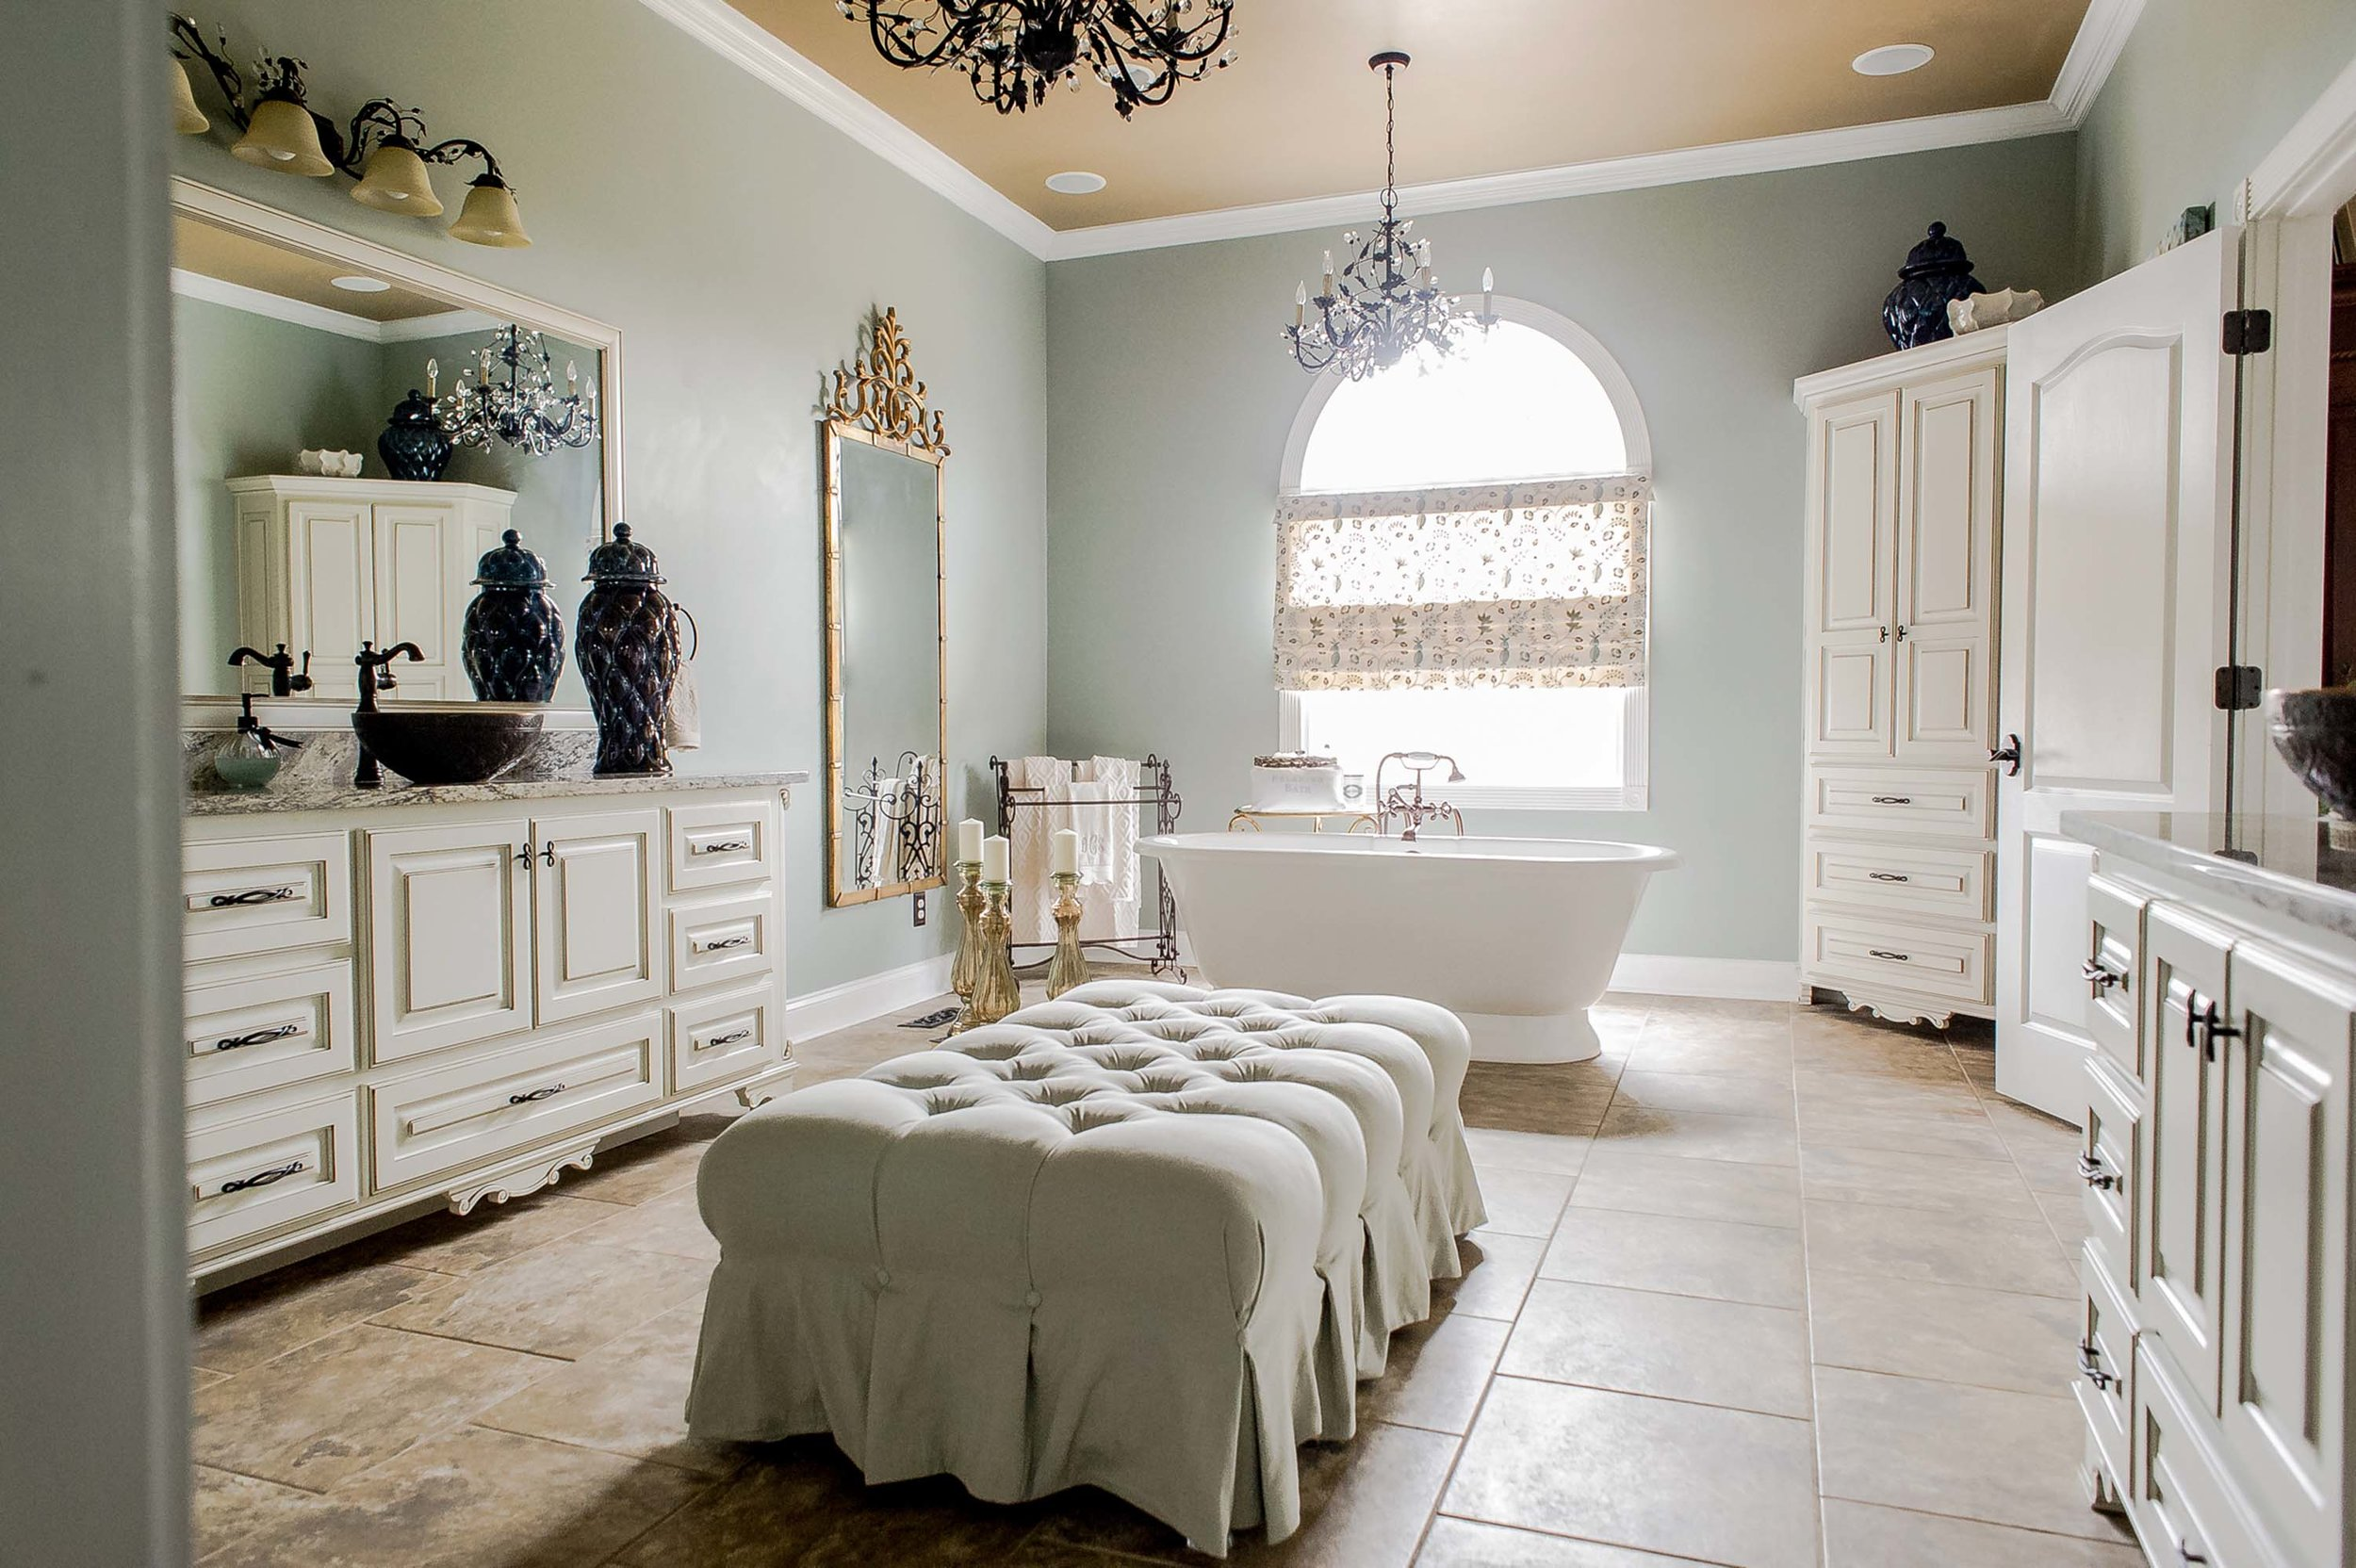 Bathroom with bathtub, white drawers, cabinet, mirror and chandelier